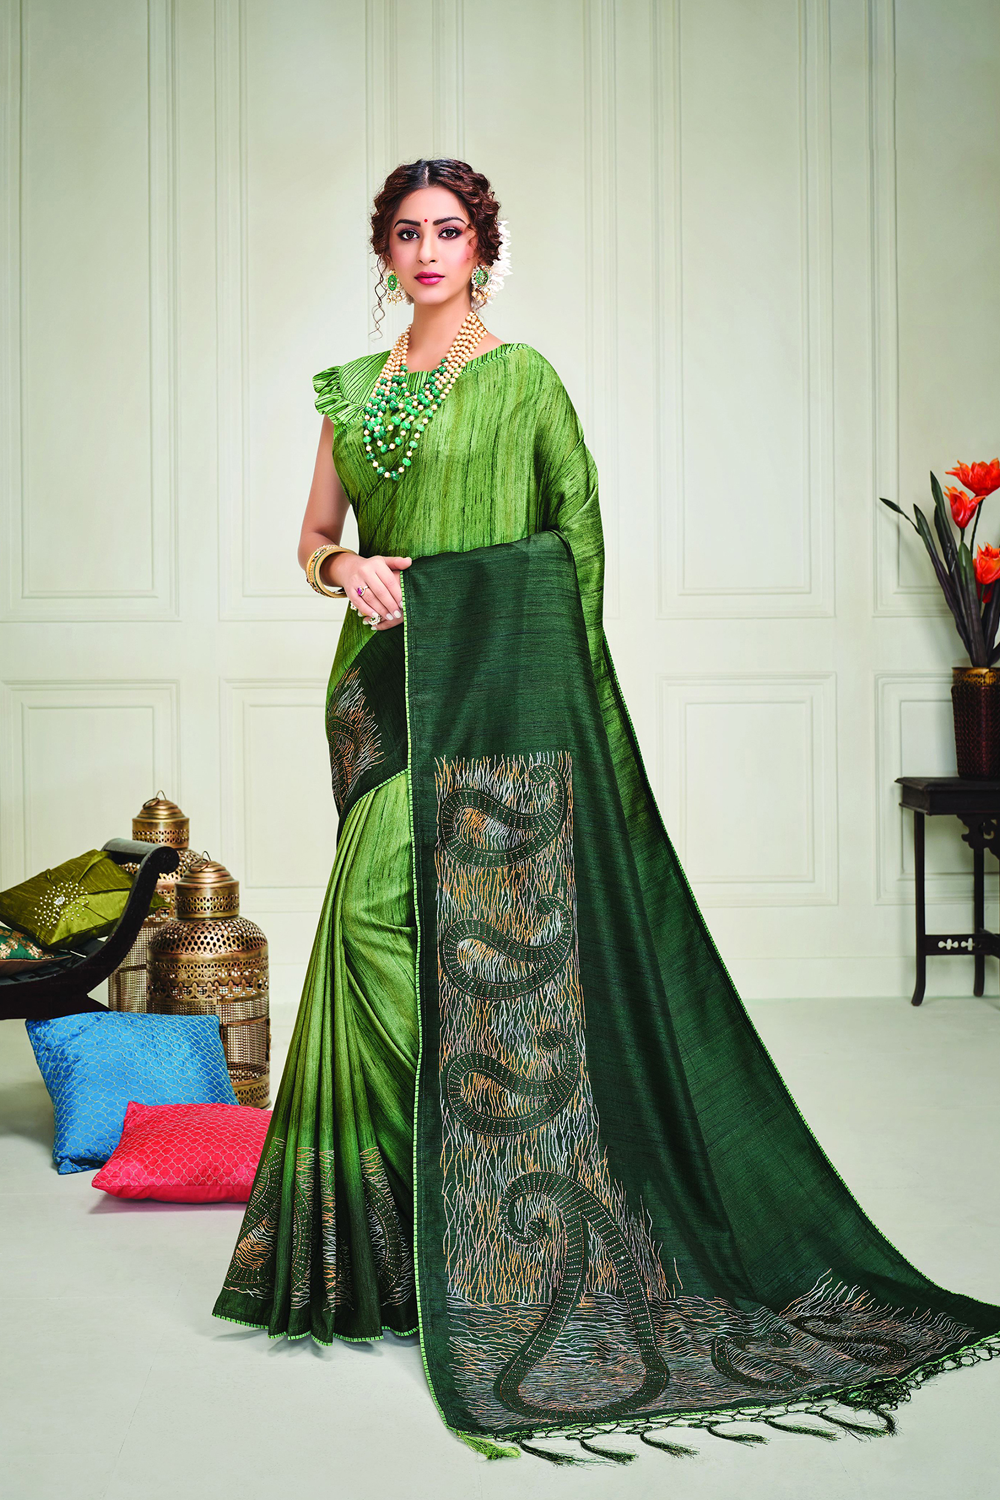 Envelope yourself in the brilliance of fresh green hues bedecked with paisley metallic foil details and define indian beauty like never before  Pair with meenakari jewels to uplift the look